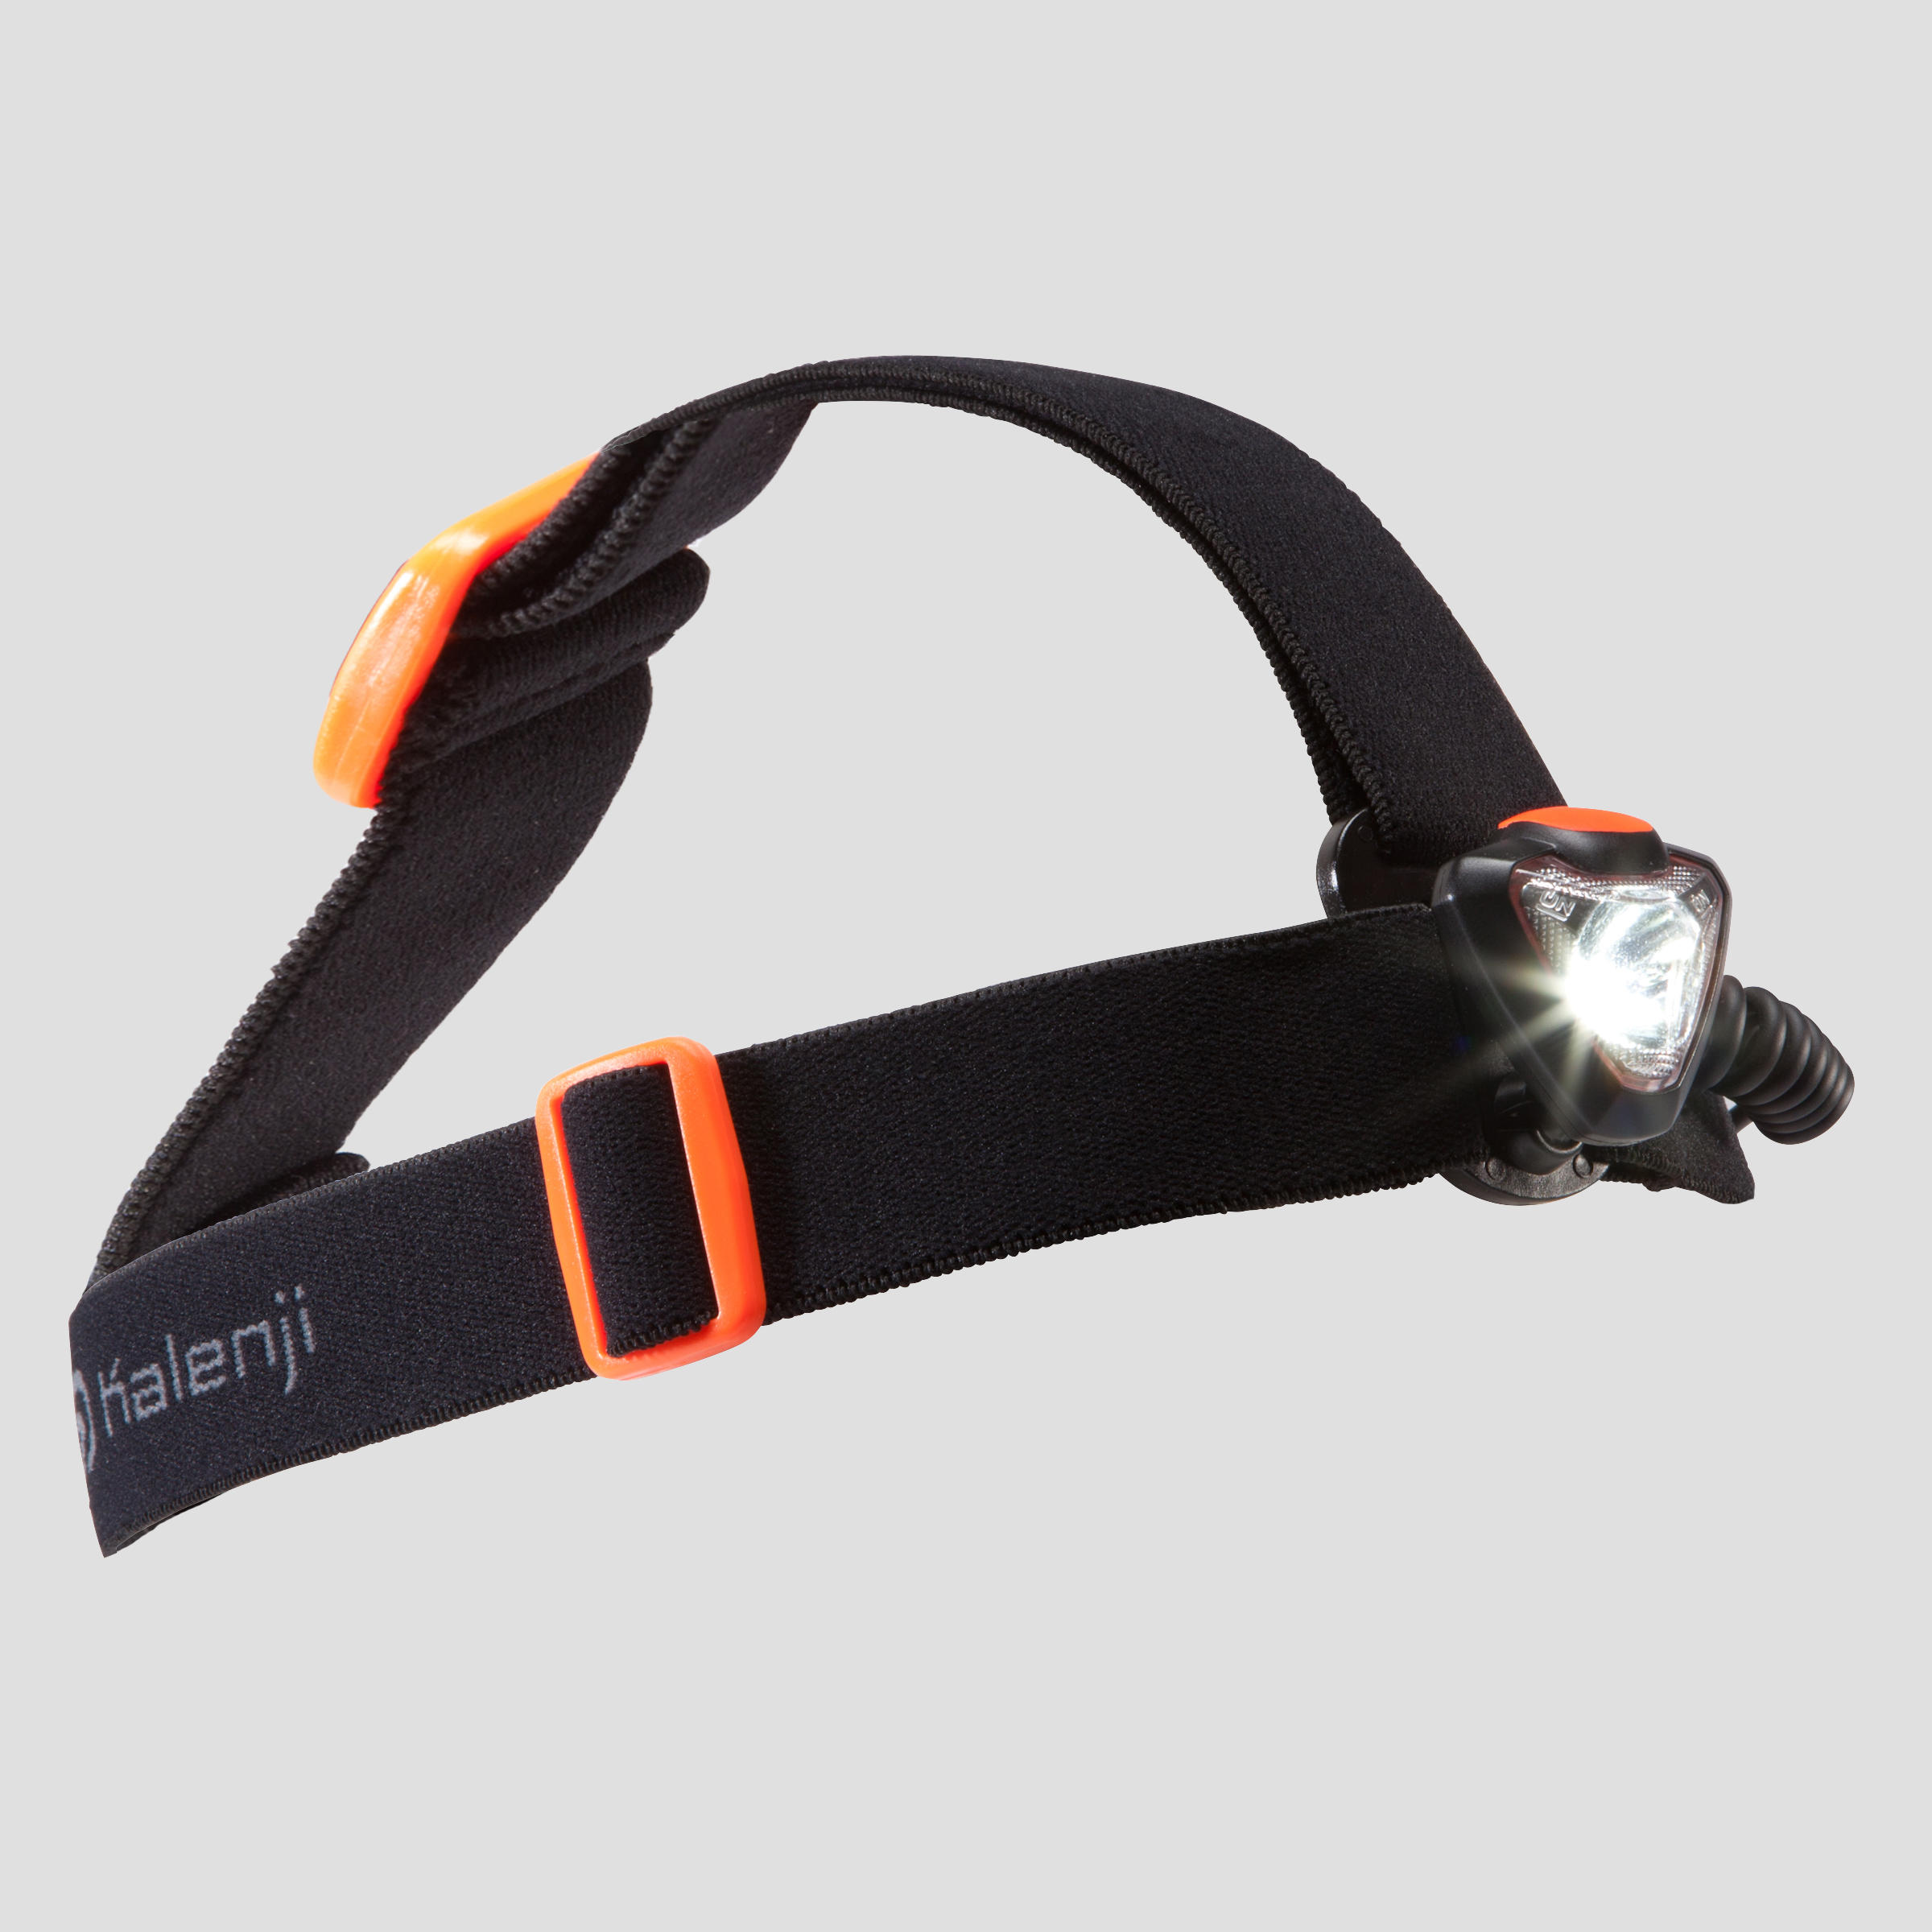 LAMPE FRONTALE COURSE SUR SENTIER ONNIGHT 410 NOIR/ORANGE - 160 LUMENS